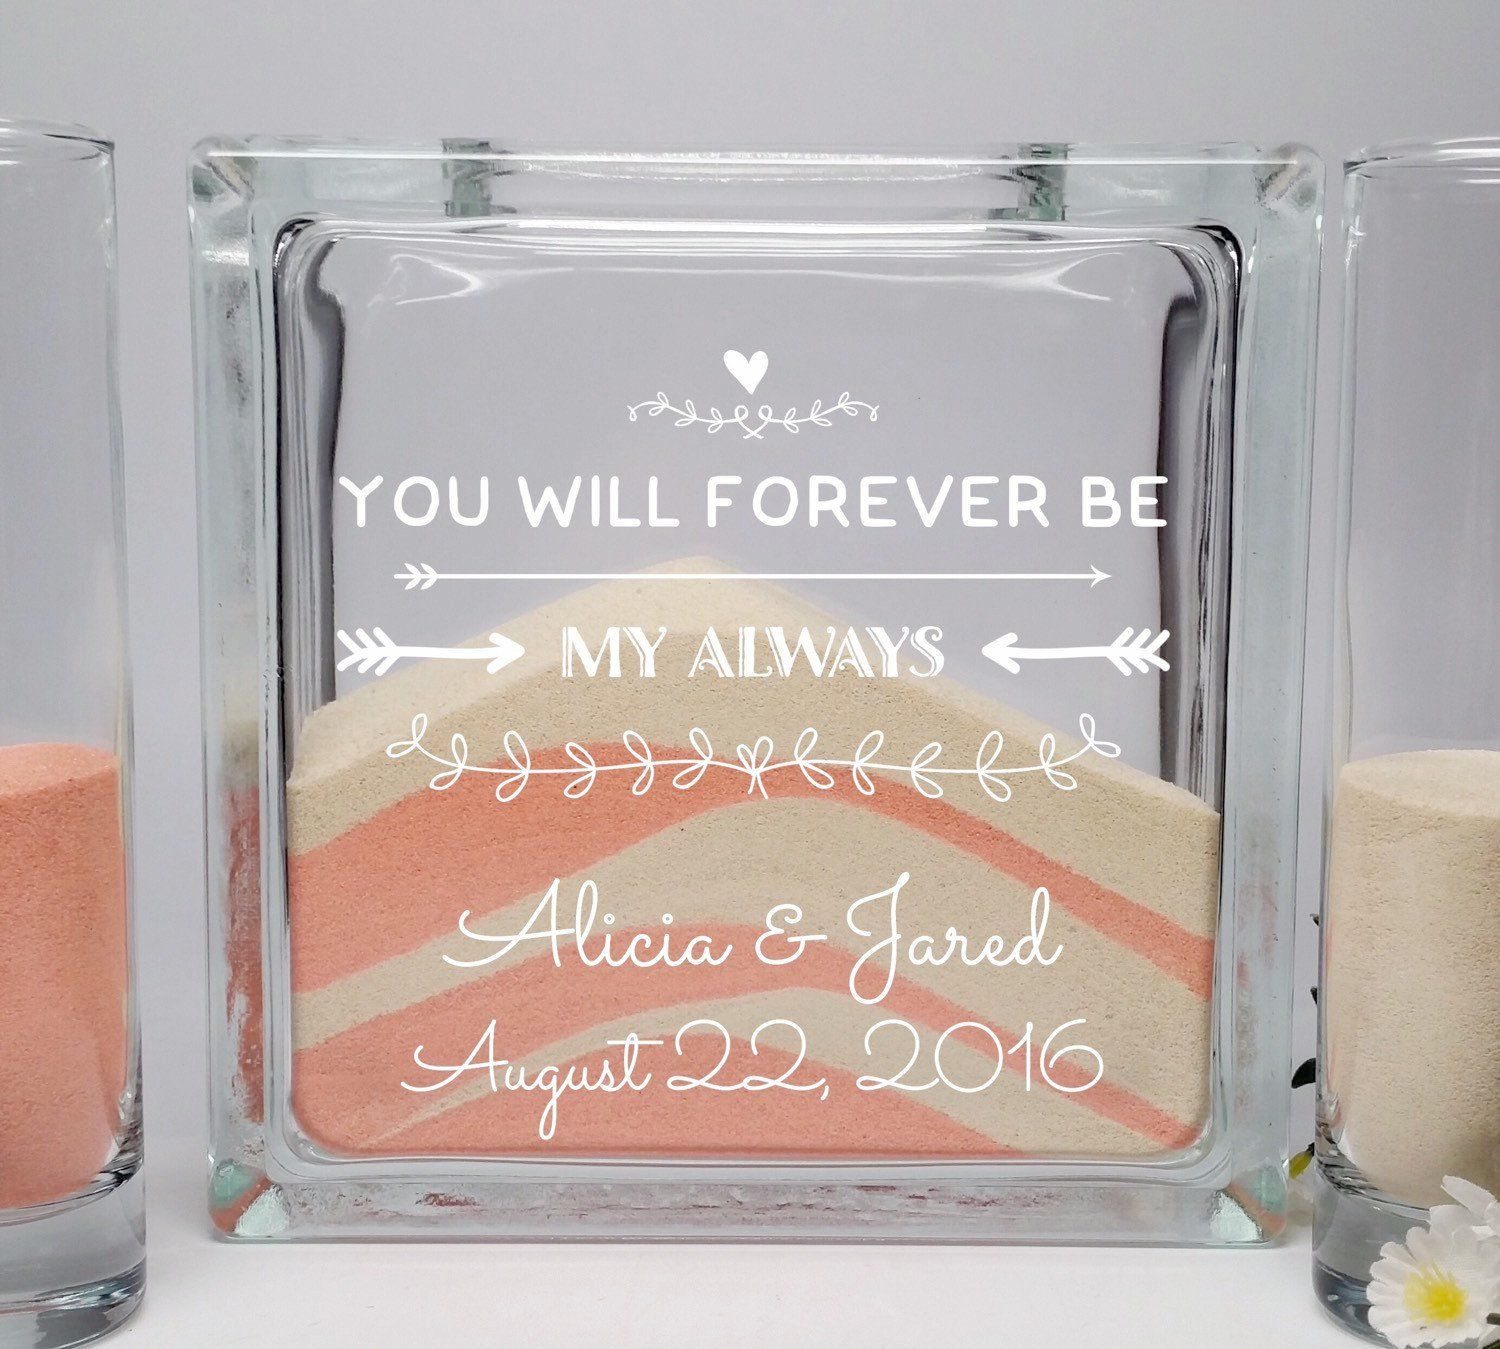 Beach Wedding Candle Ceremony: You Will Always Be My Forever